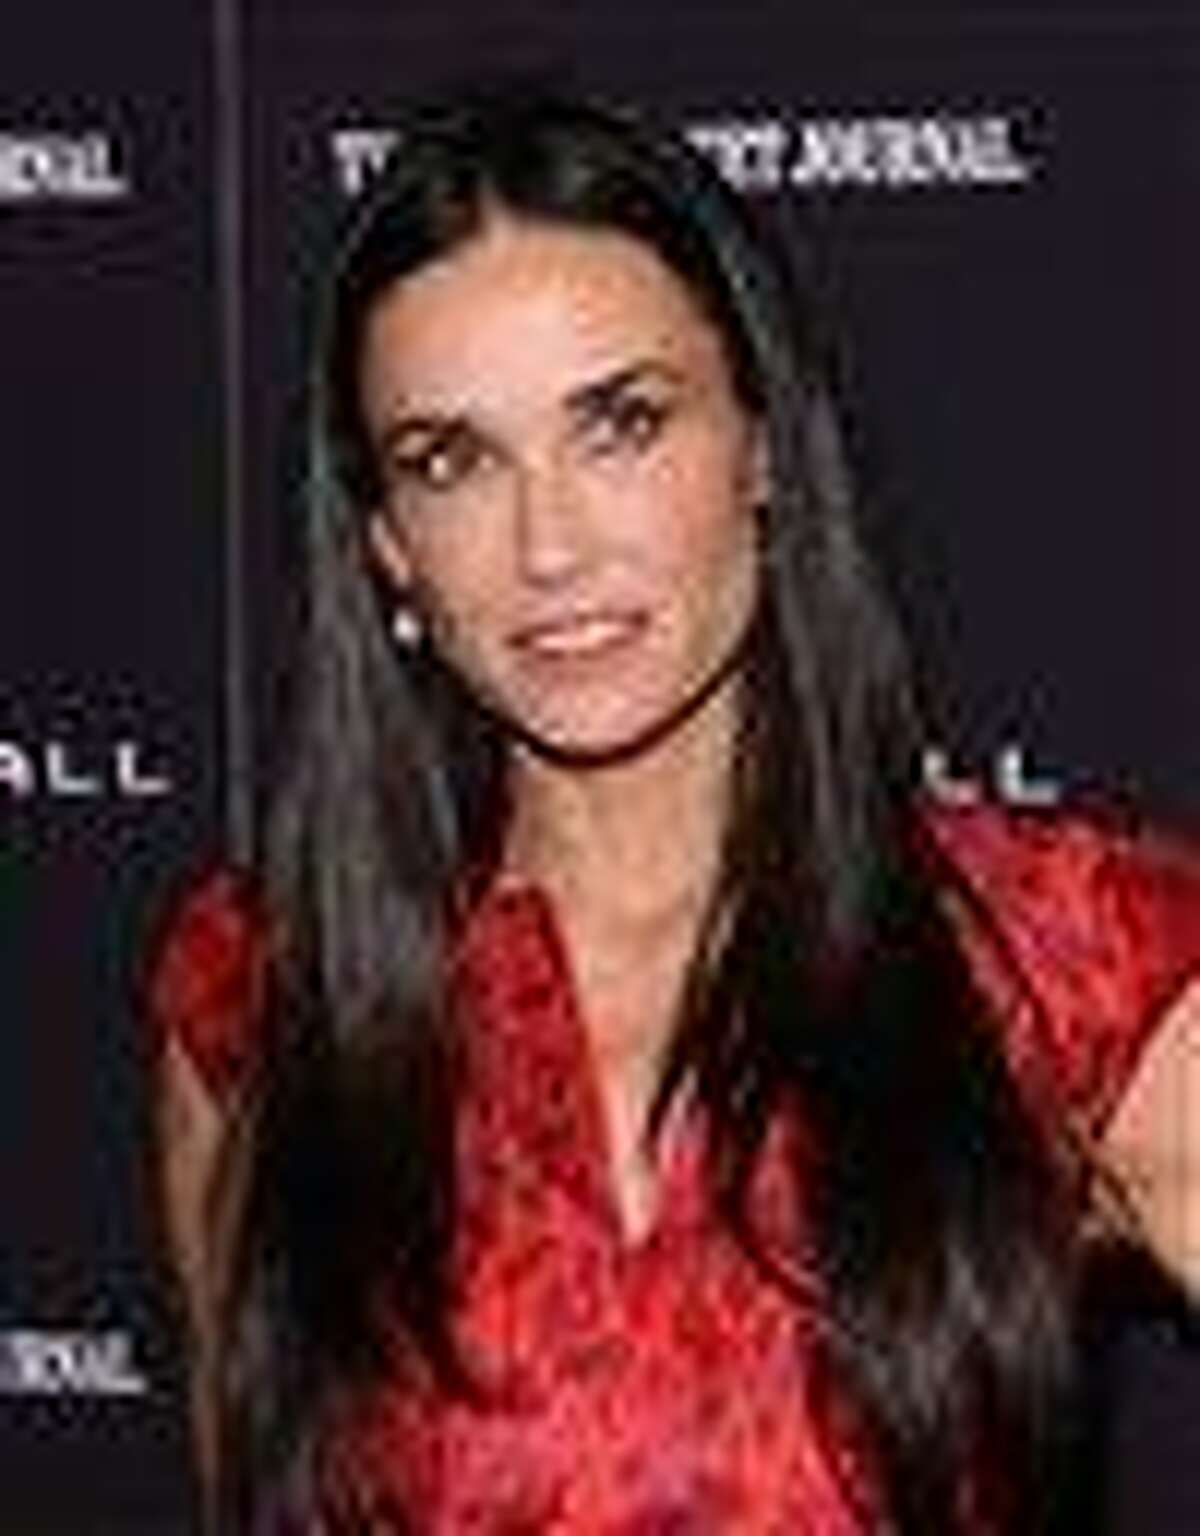 """In this October 2011 file photo, actress Demi Moore attends the premiere of """"Margin Call"""" in New York. A spokeswoman for Moore said Tuesday the actress is seeking professional help to treat her exhaustion and improve her health. Associated Press"""